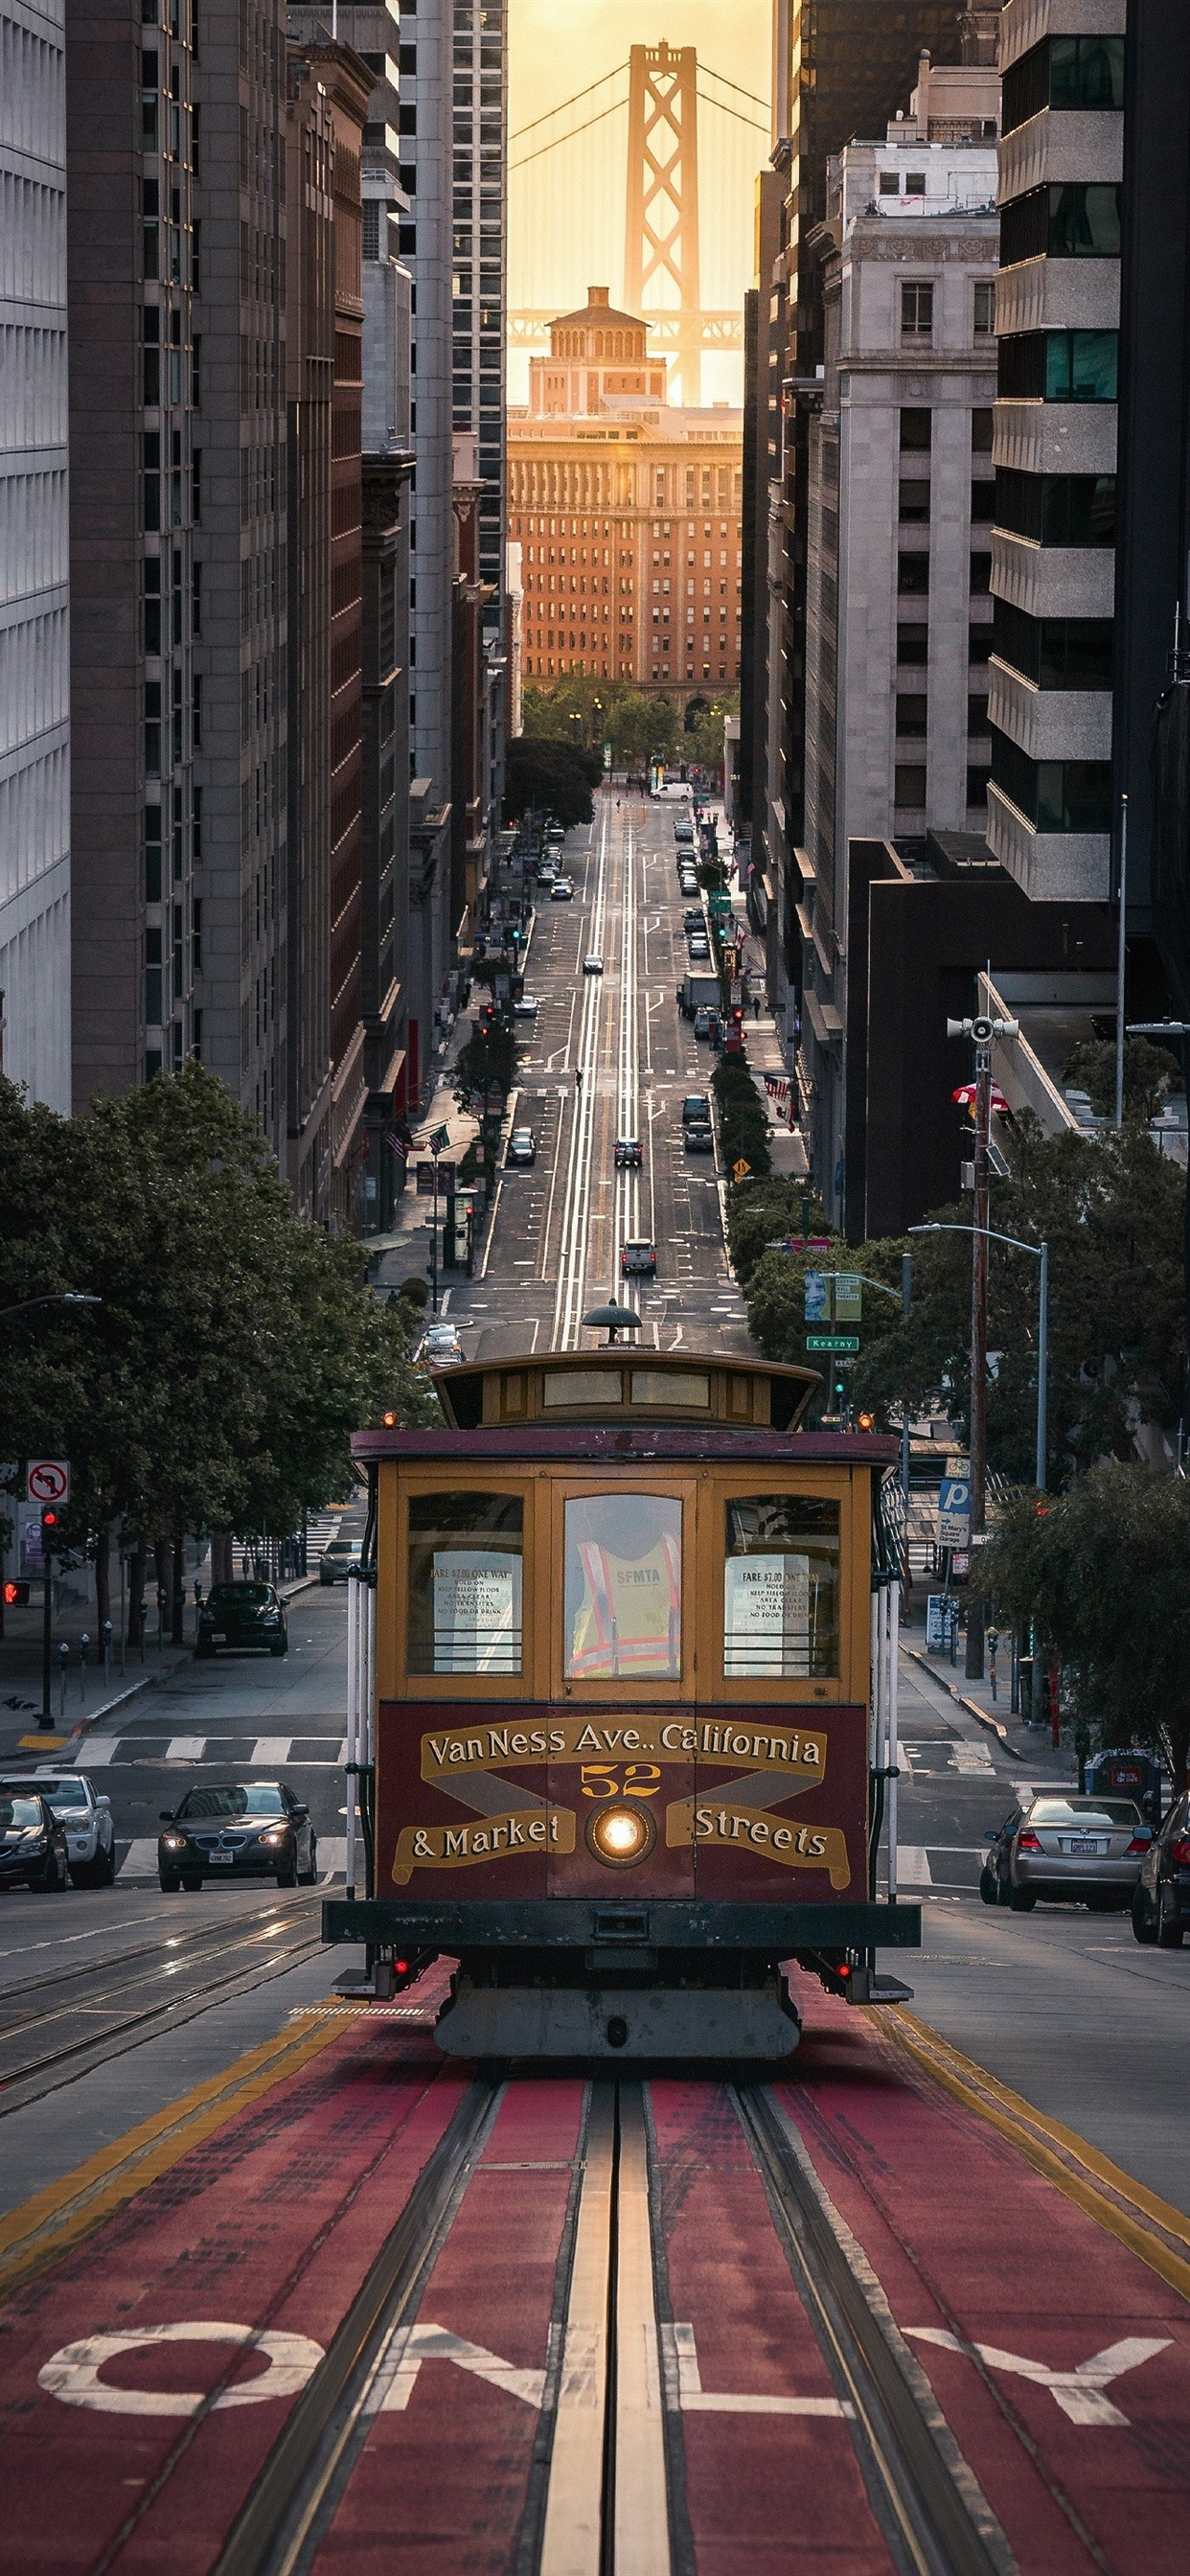 San Francisco City Street Tram Usa 1242x2688 Iphone 11 Pro Xs Max Wallpaper Background Picture Image